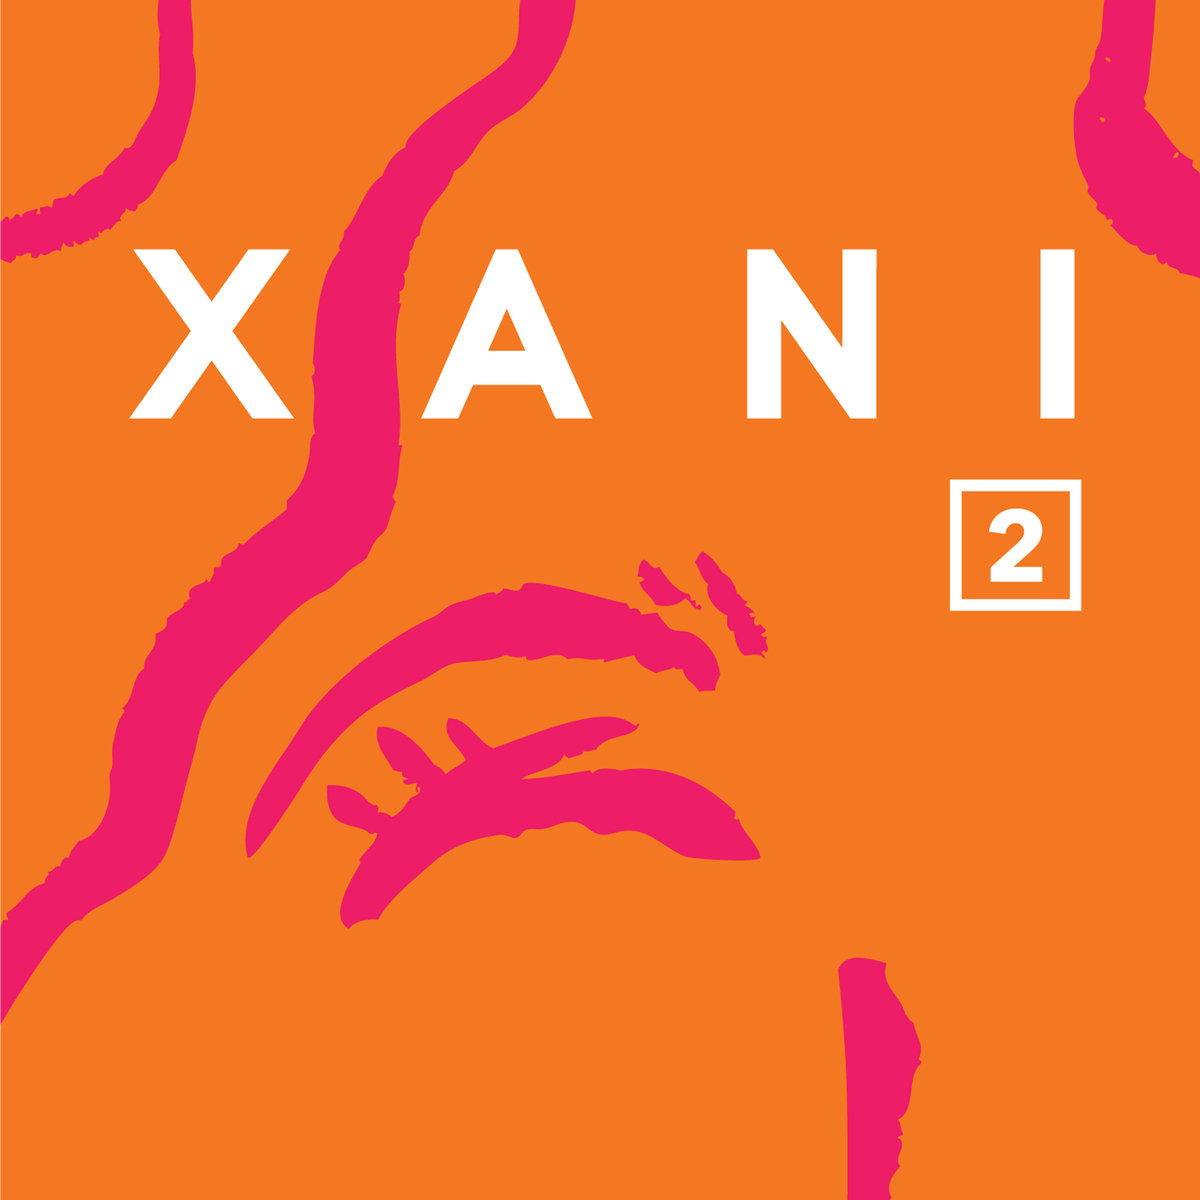 XANI's 2nd EP. Produced, engineered, mixed and mastered by Myles Mumford